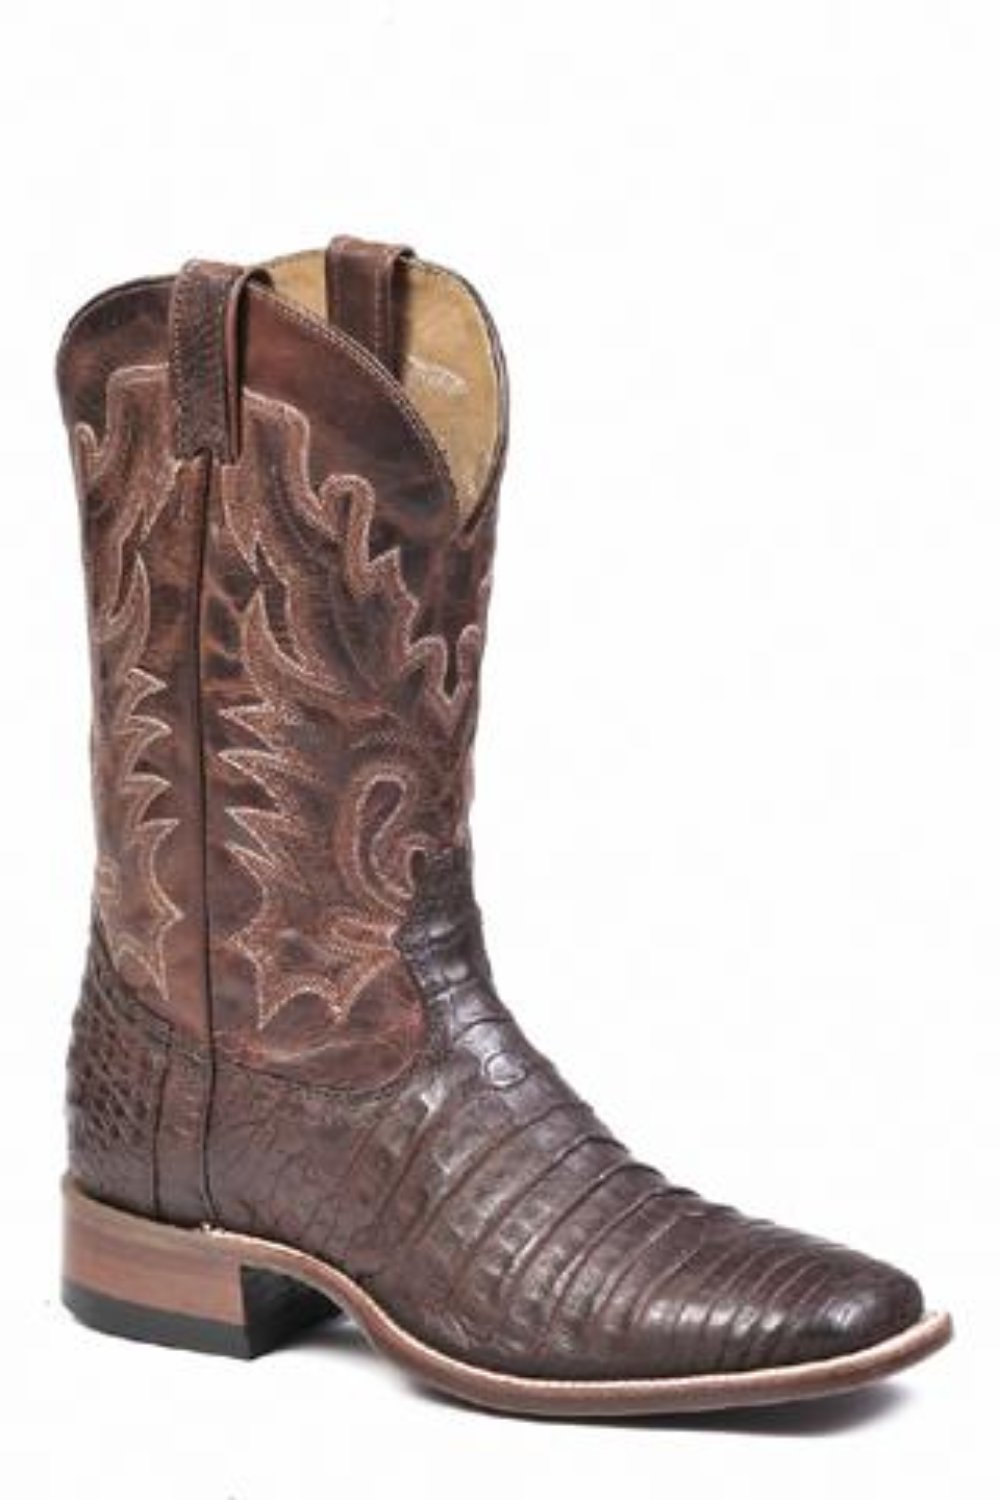 BOULET MEN'S CAIMAN CHOCOLATE MATTE BOOT- STYLE #7533